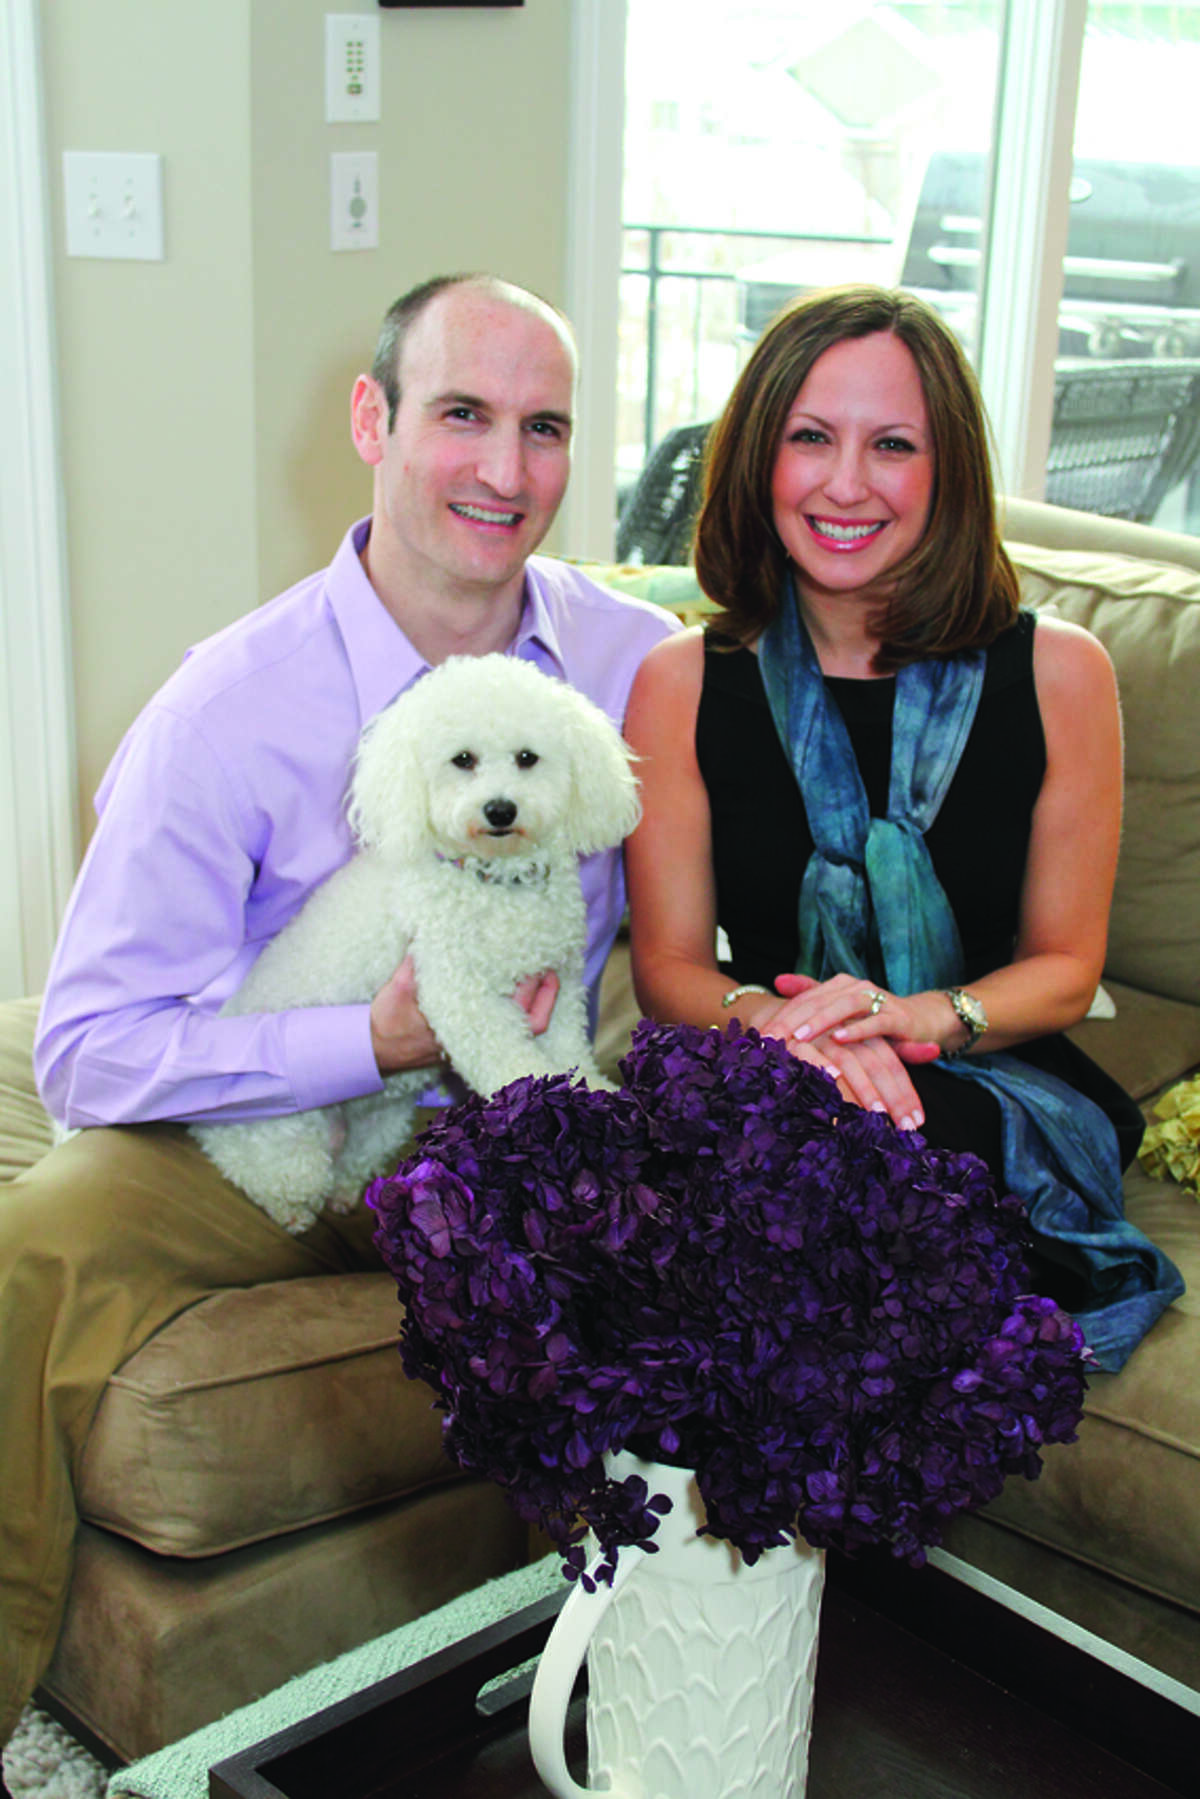 Luke and Nichole Rigolosi tranformed their condo from a bachelor pad to a newlywed nest. (Nancy Bruno/Life@Home) Click here to read the story.